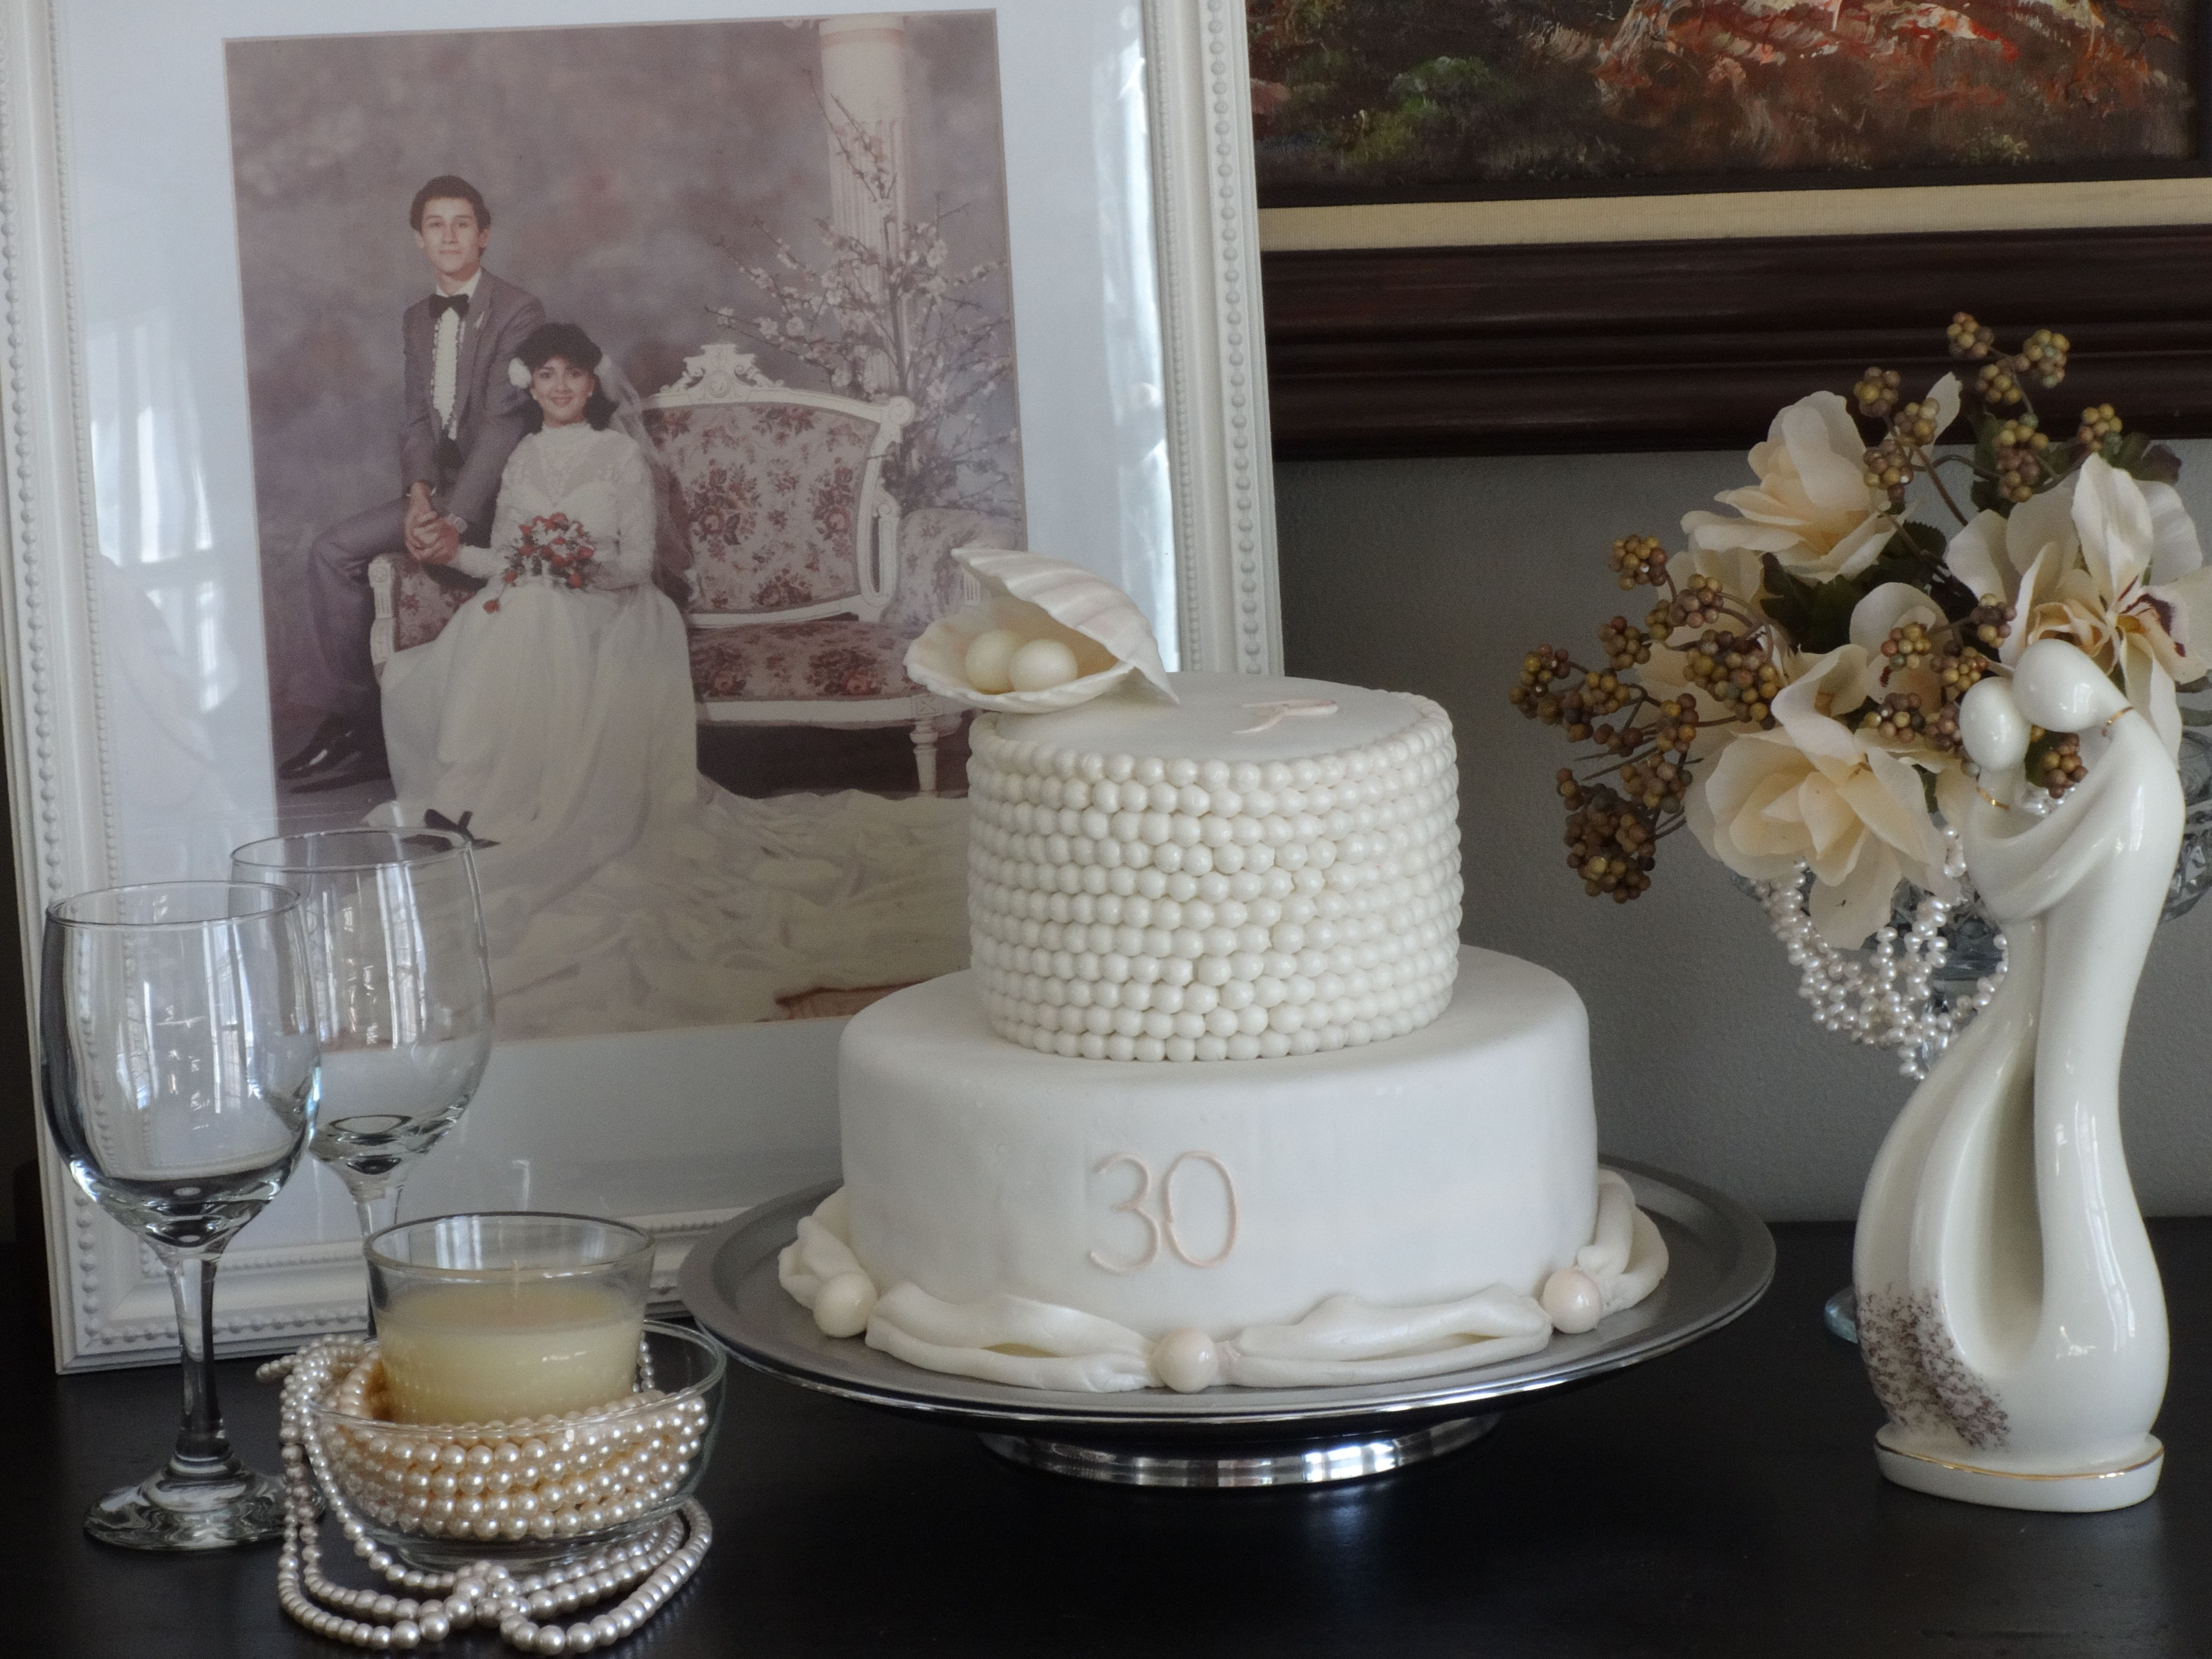 Best Ideas For 30th Wedding Anniversary Gallery - Styles & Ideas ...